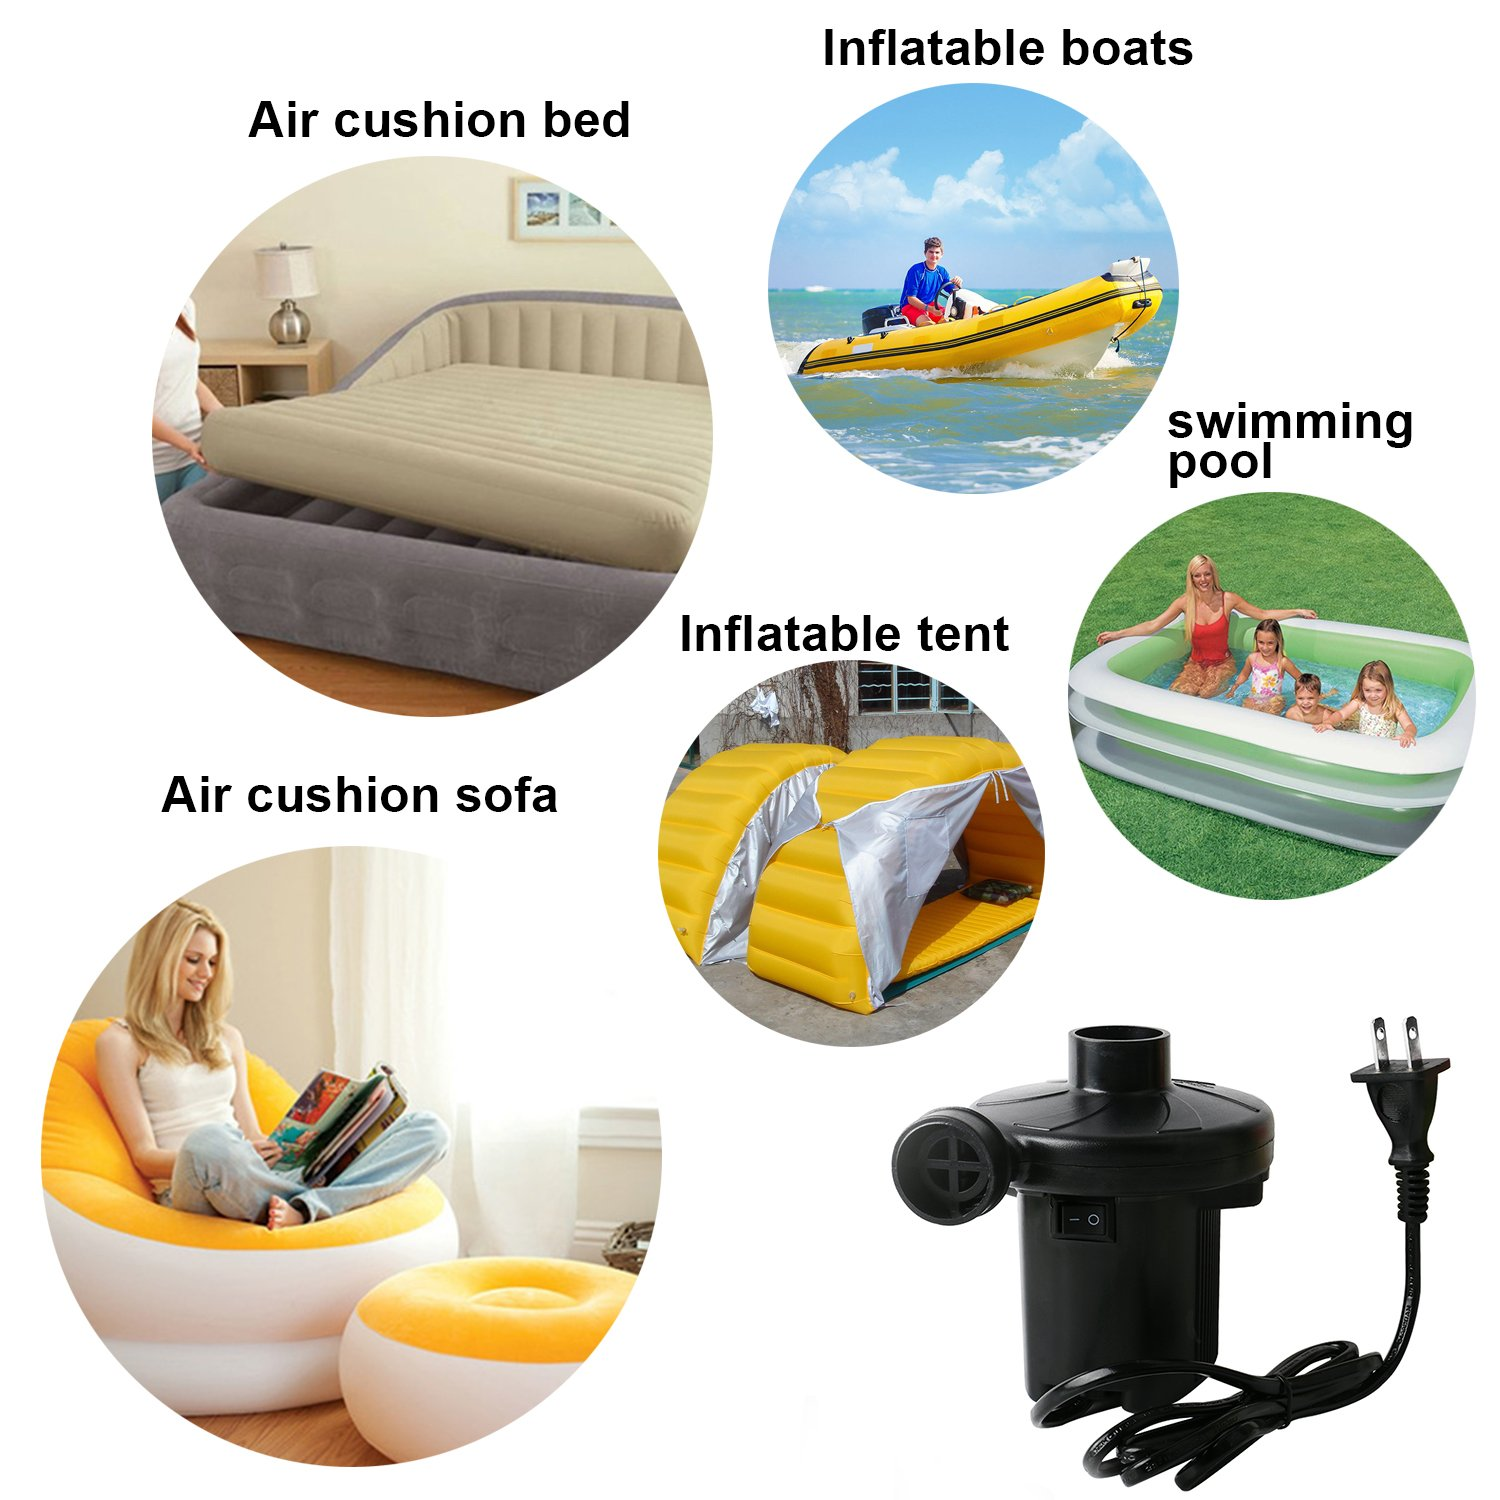 amazon com okpow quick fill electric air pump for inflatables air